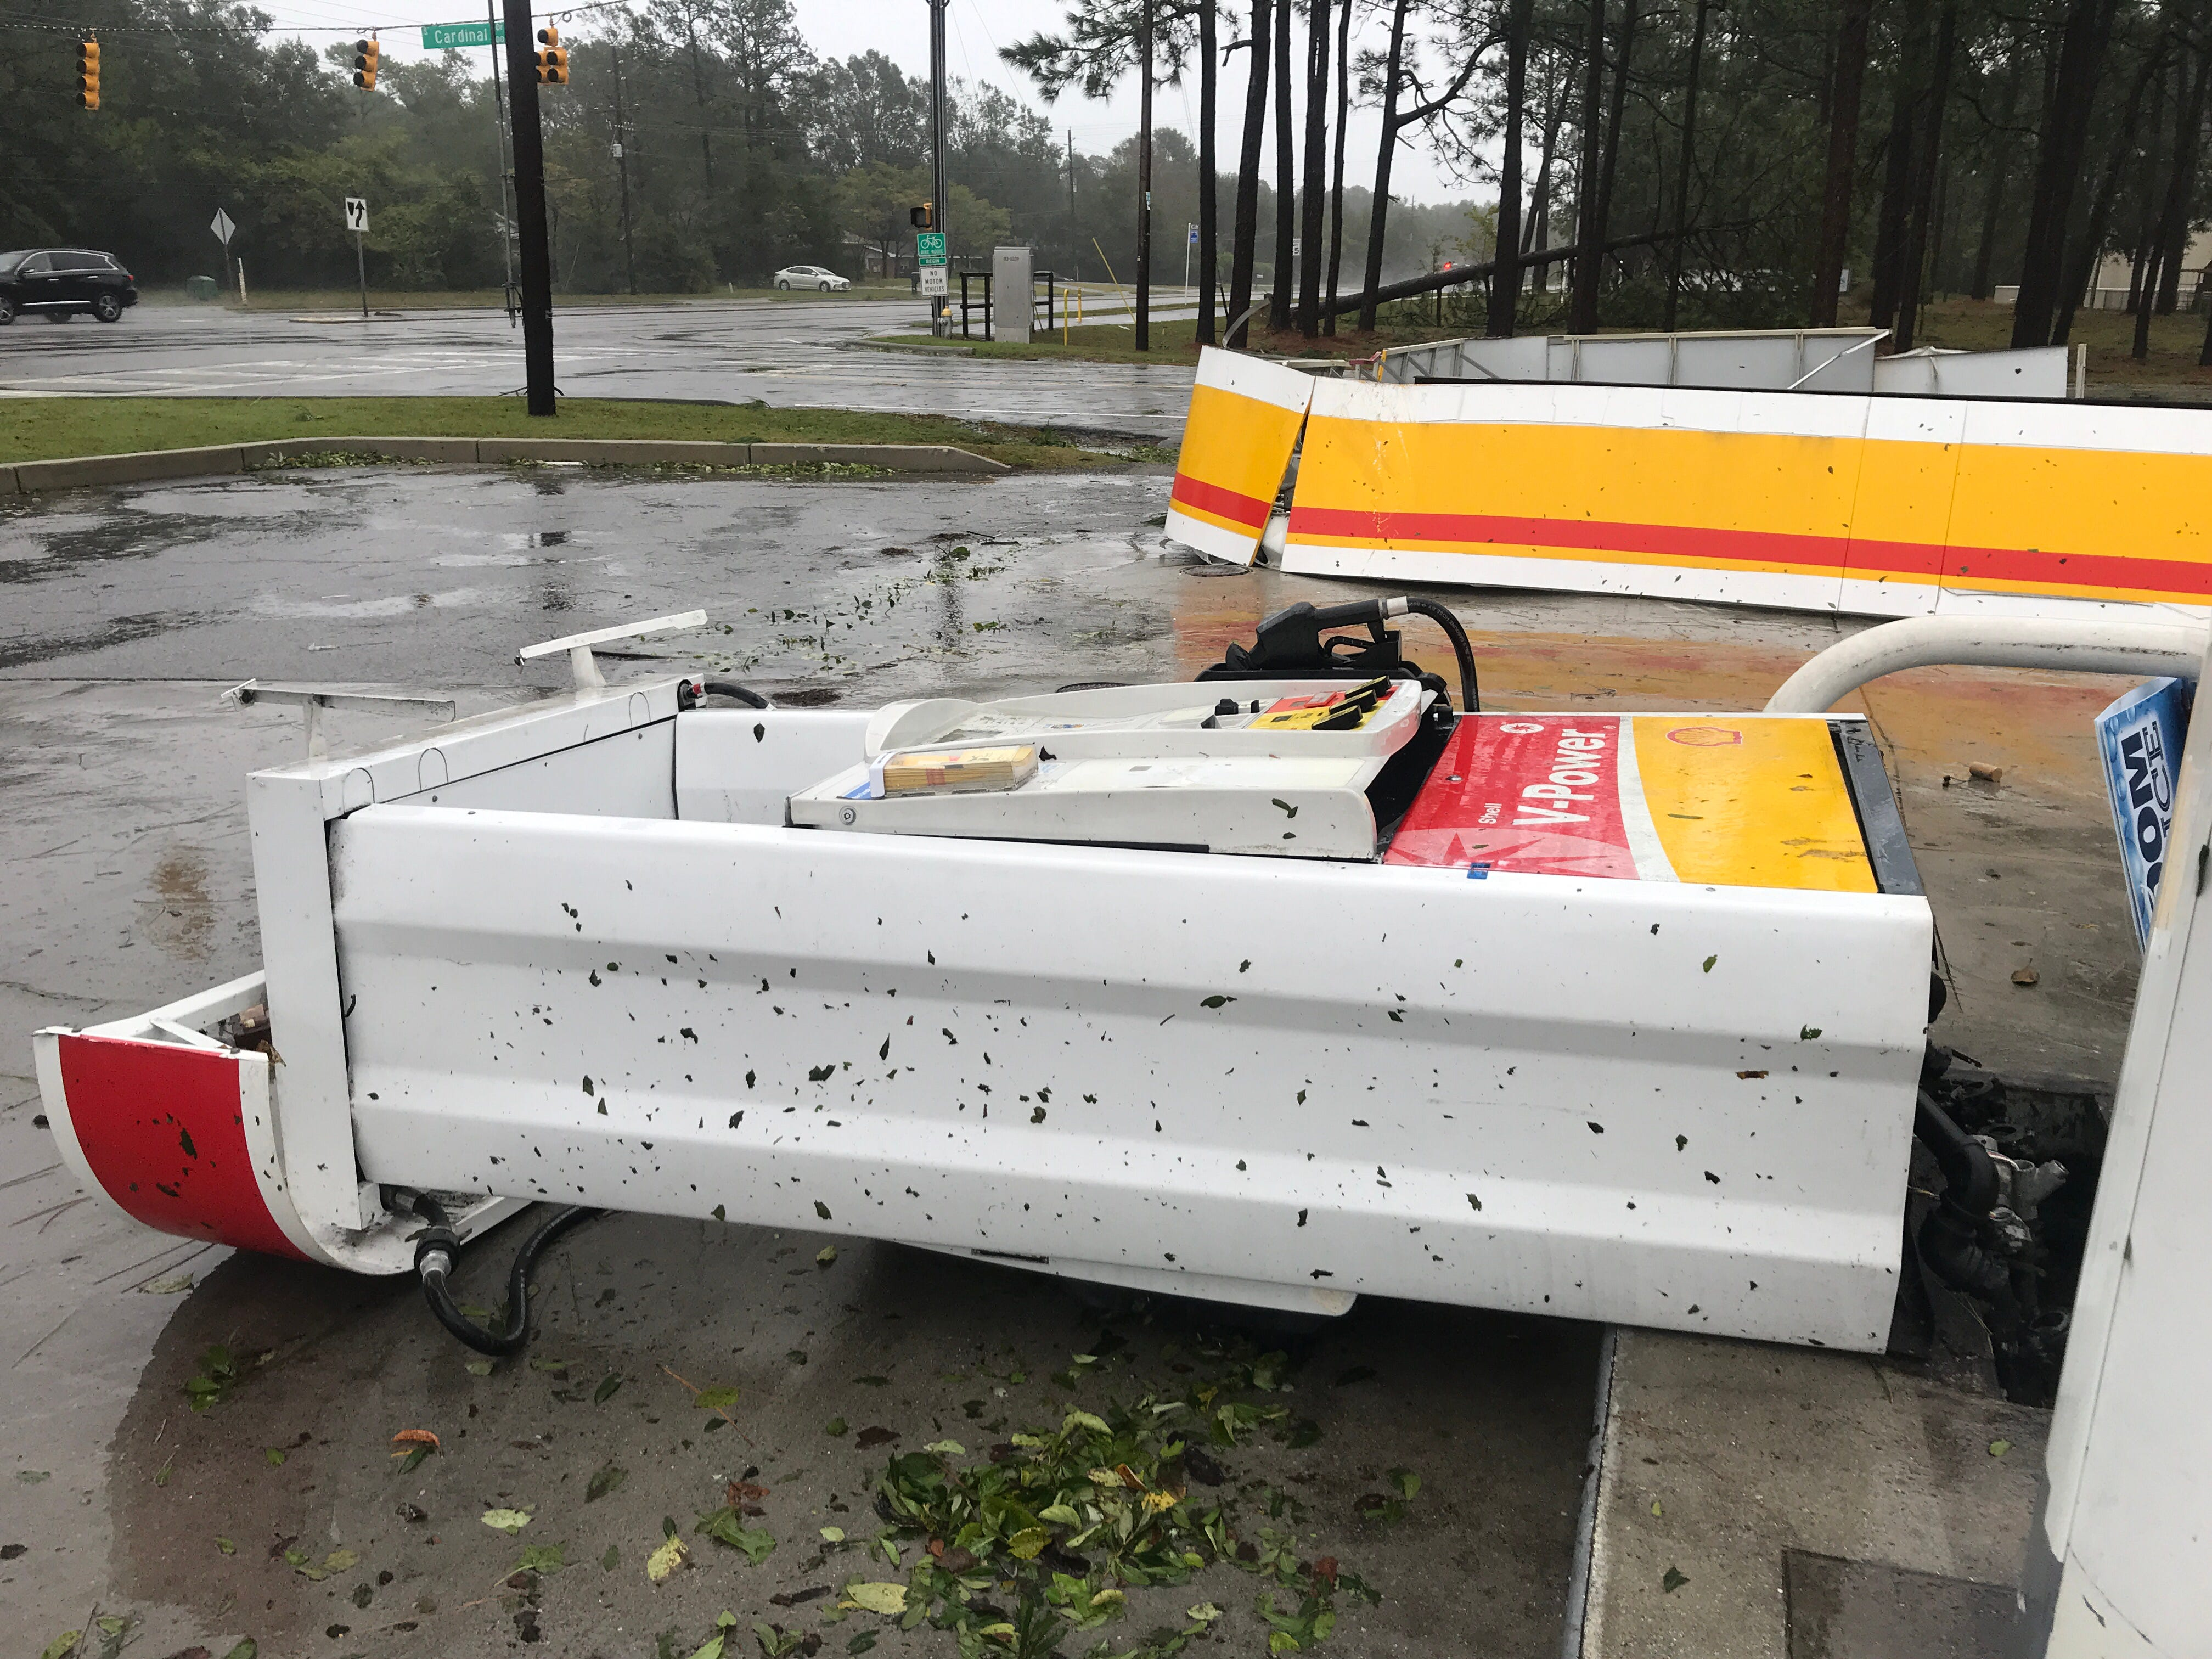 A Shell gas station on State Highway 74, a route from Wilmington to Wrightsville Beach, lost part of its roof and knocked over a pump during Hurricane Florence on Friday, Sept. 14, 2018.